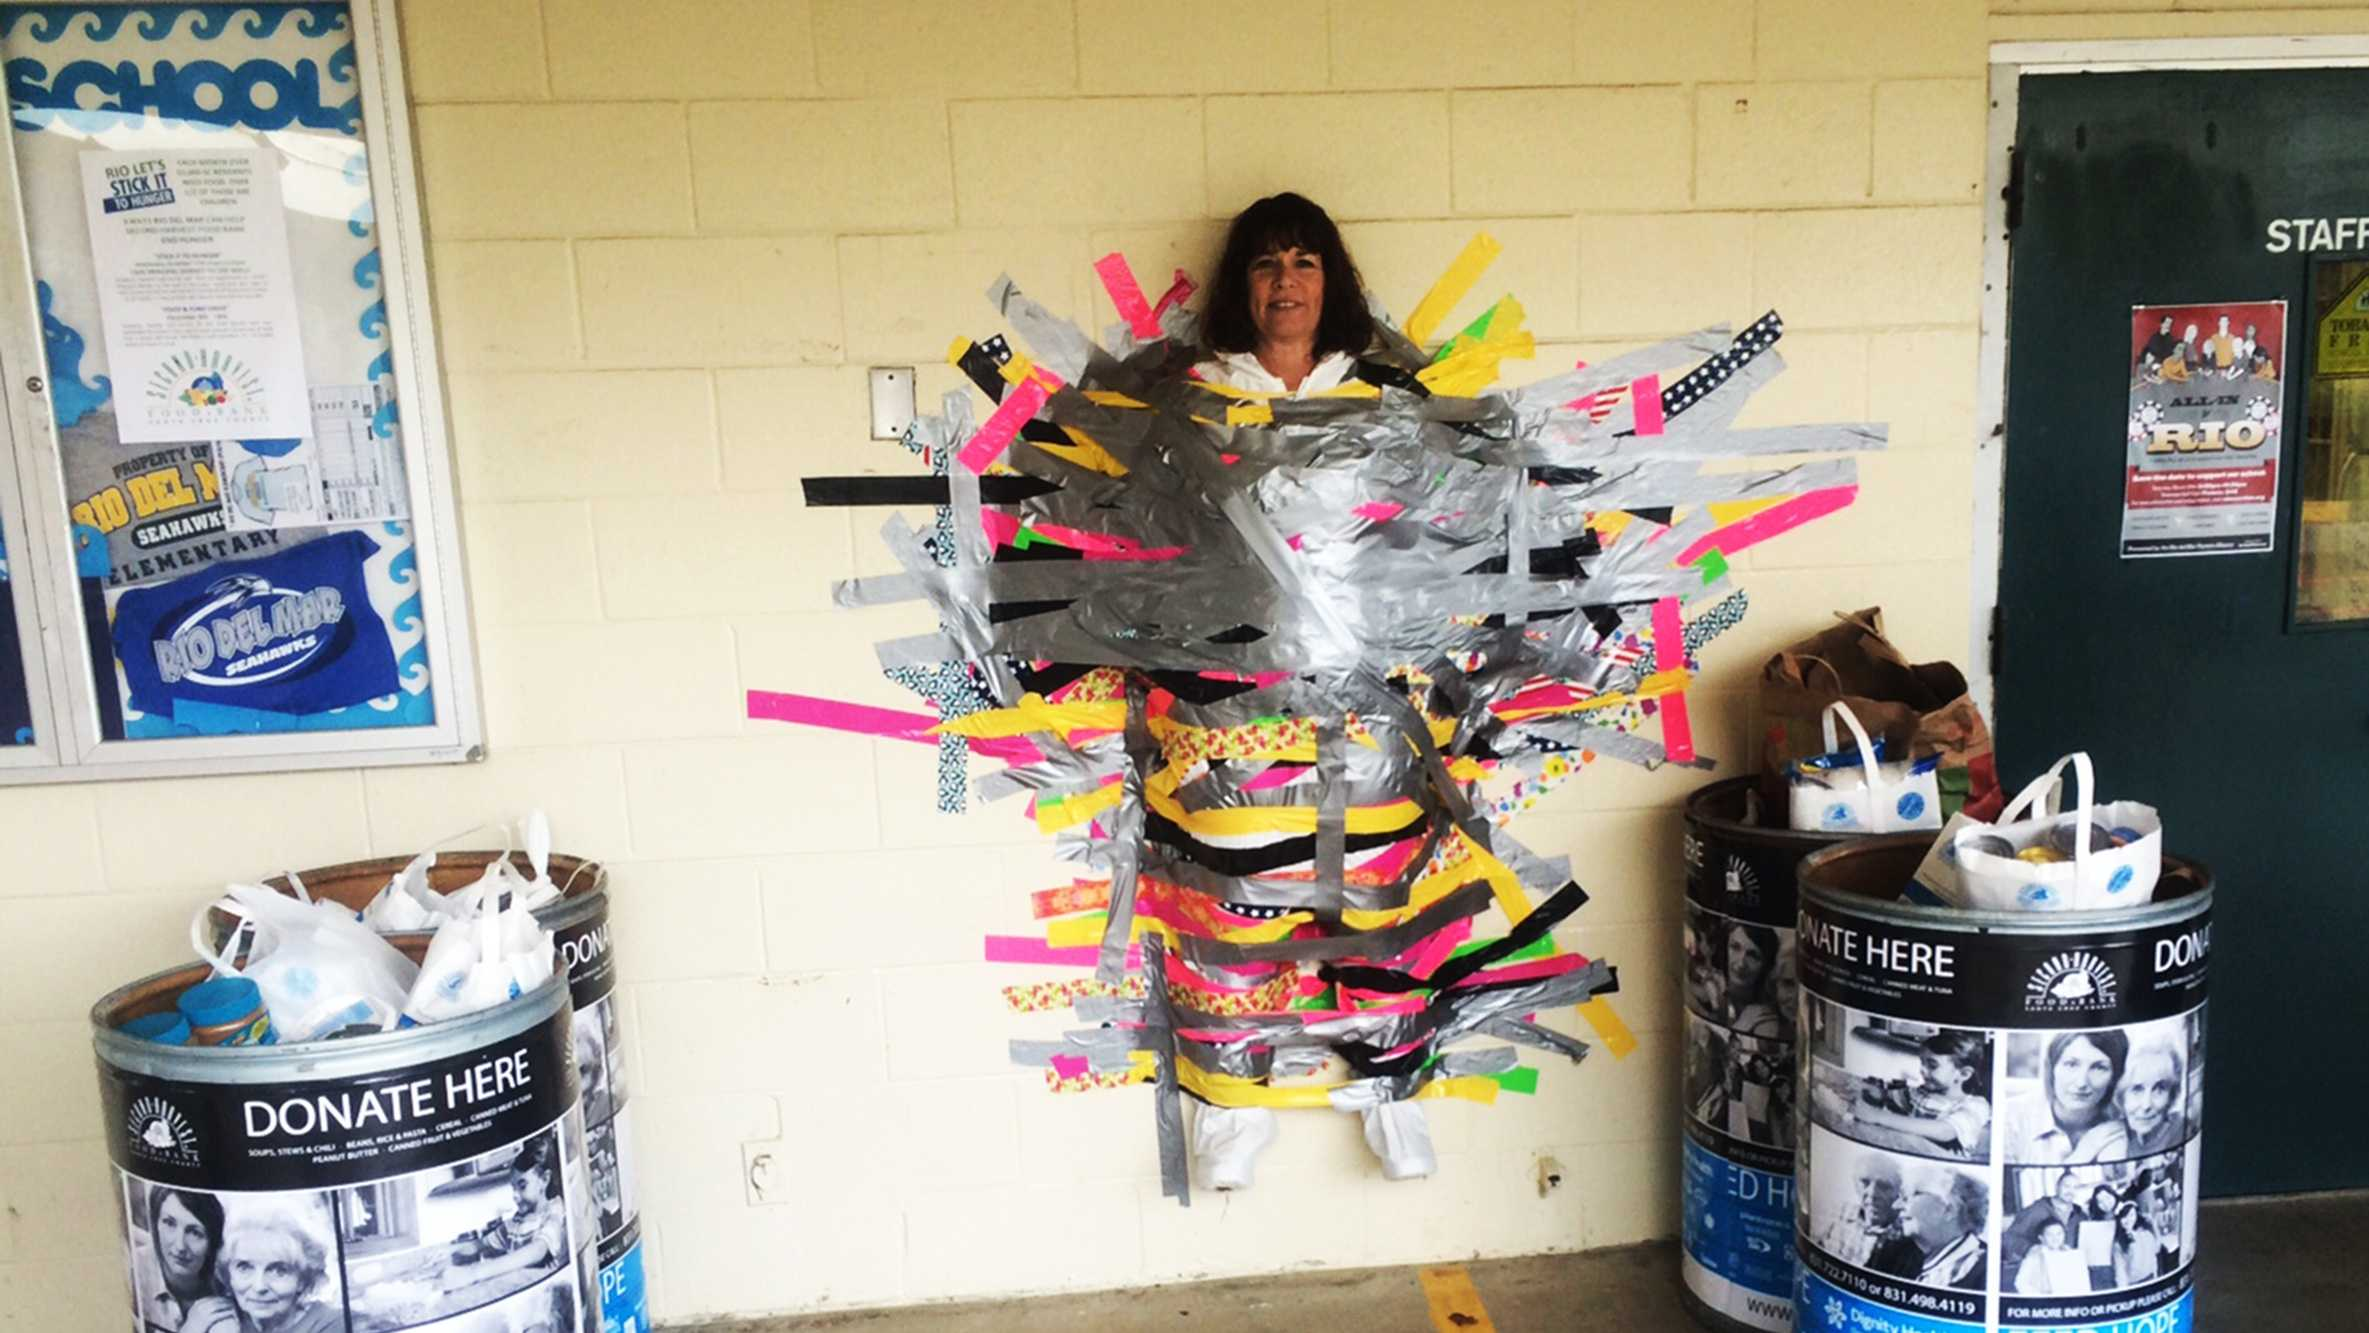 Principal Dorney was taped to a wall at Rio Del Mar Elementary School in Aptos. (Dec. 17, 2014)